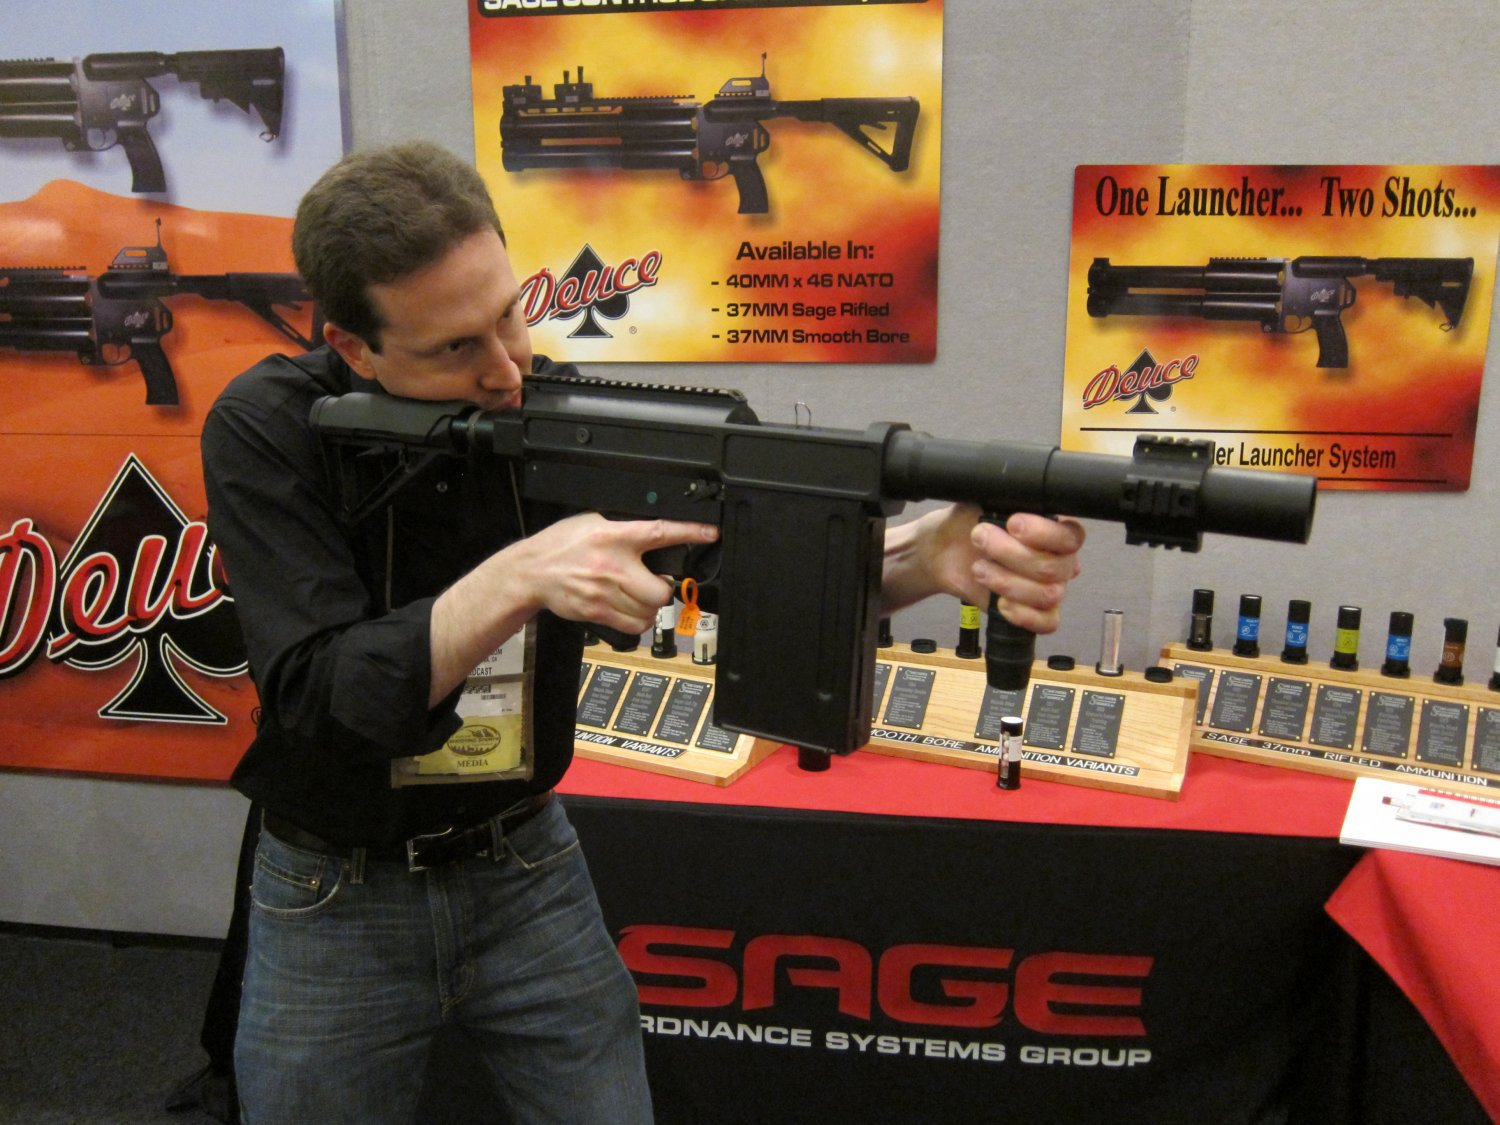 Sage_Ordnance_Systems_Mag-Fed_Semi-Auto_37mm_Grenade_Launcher_David_Crane_SHOT_Show_2011_1